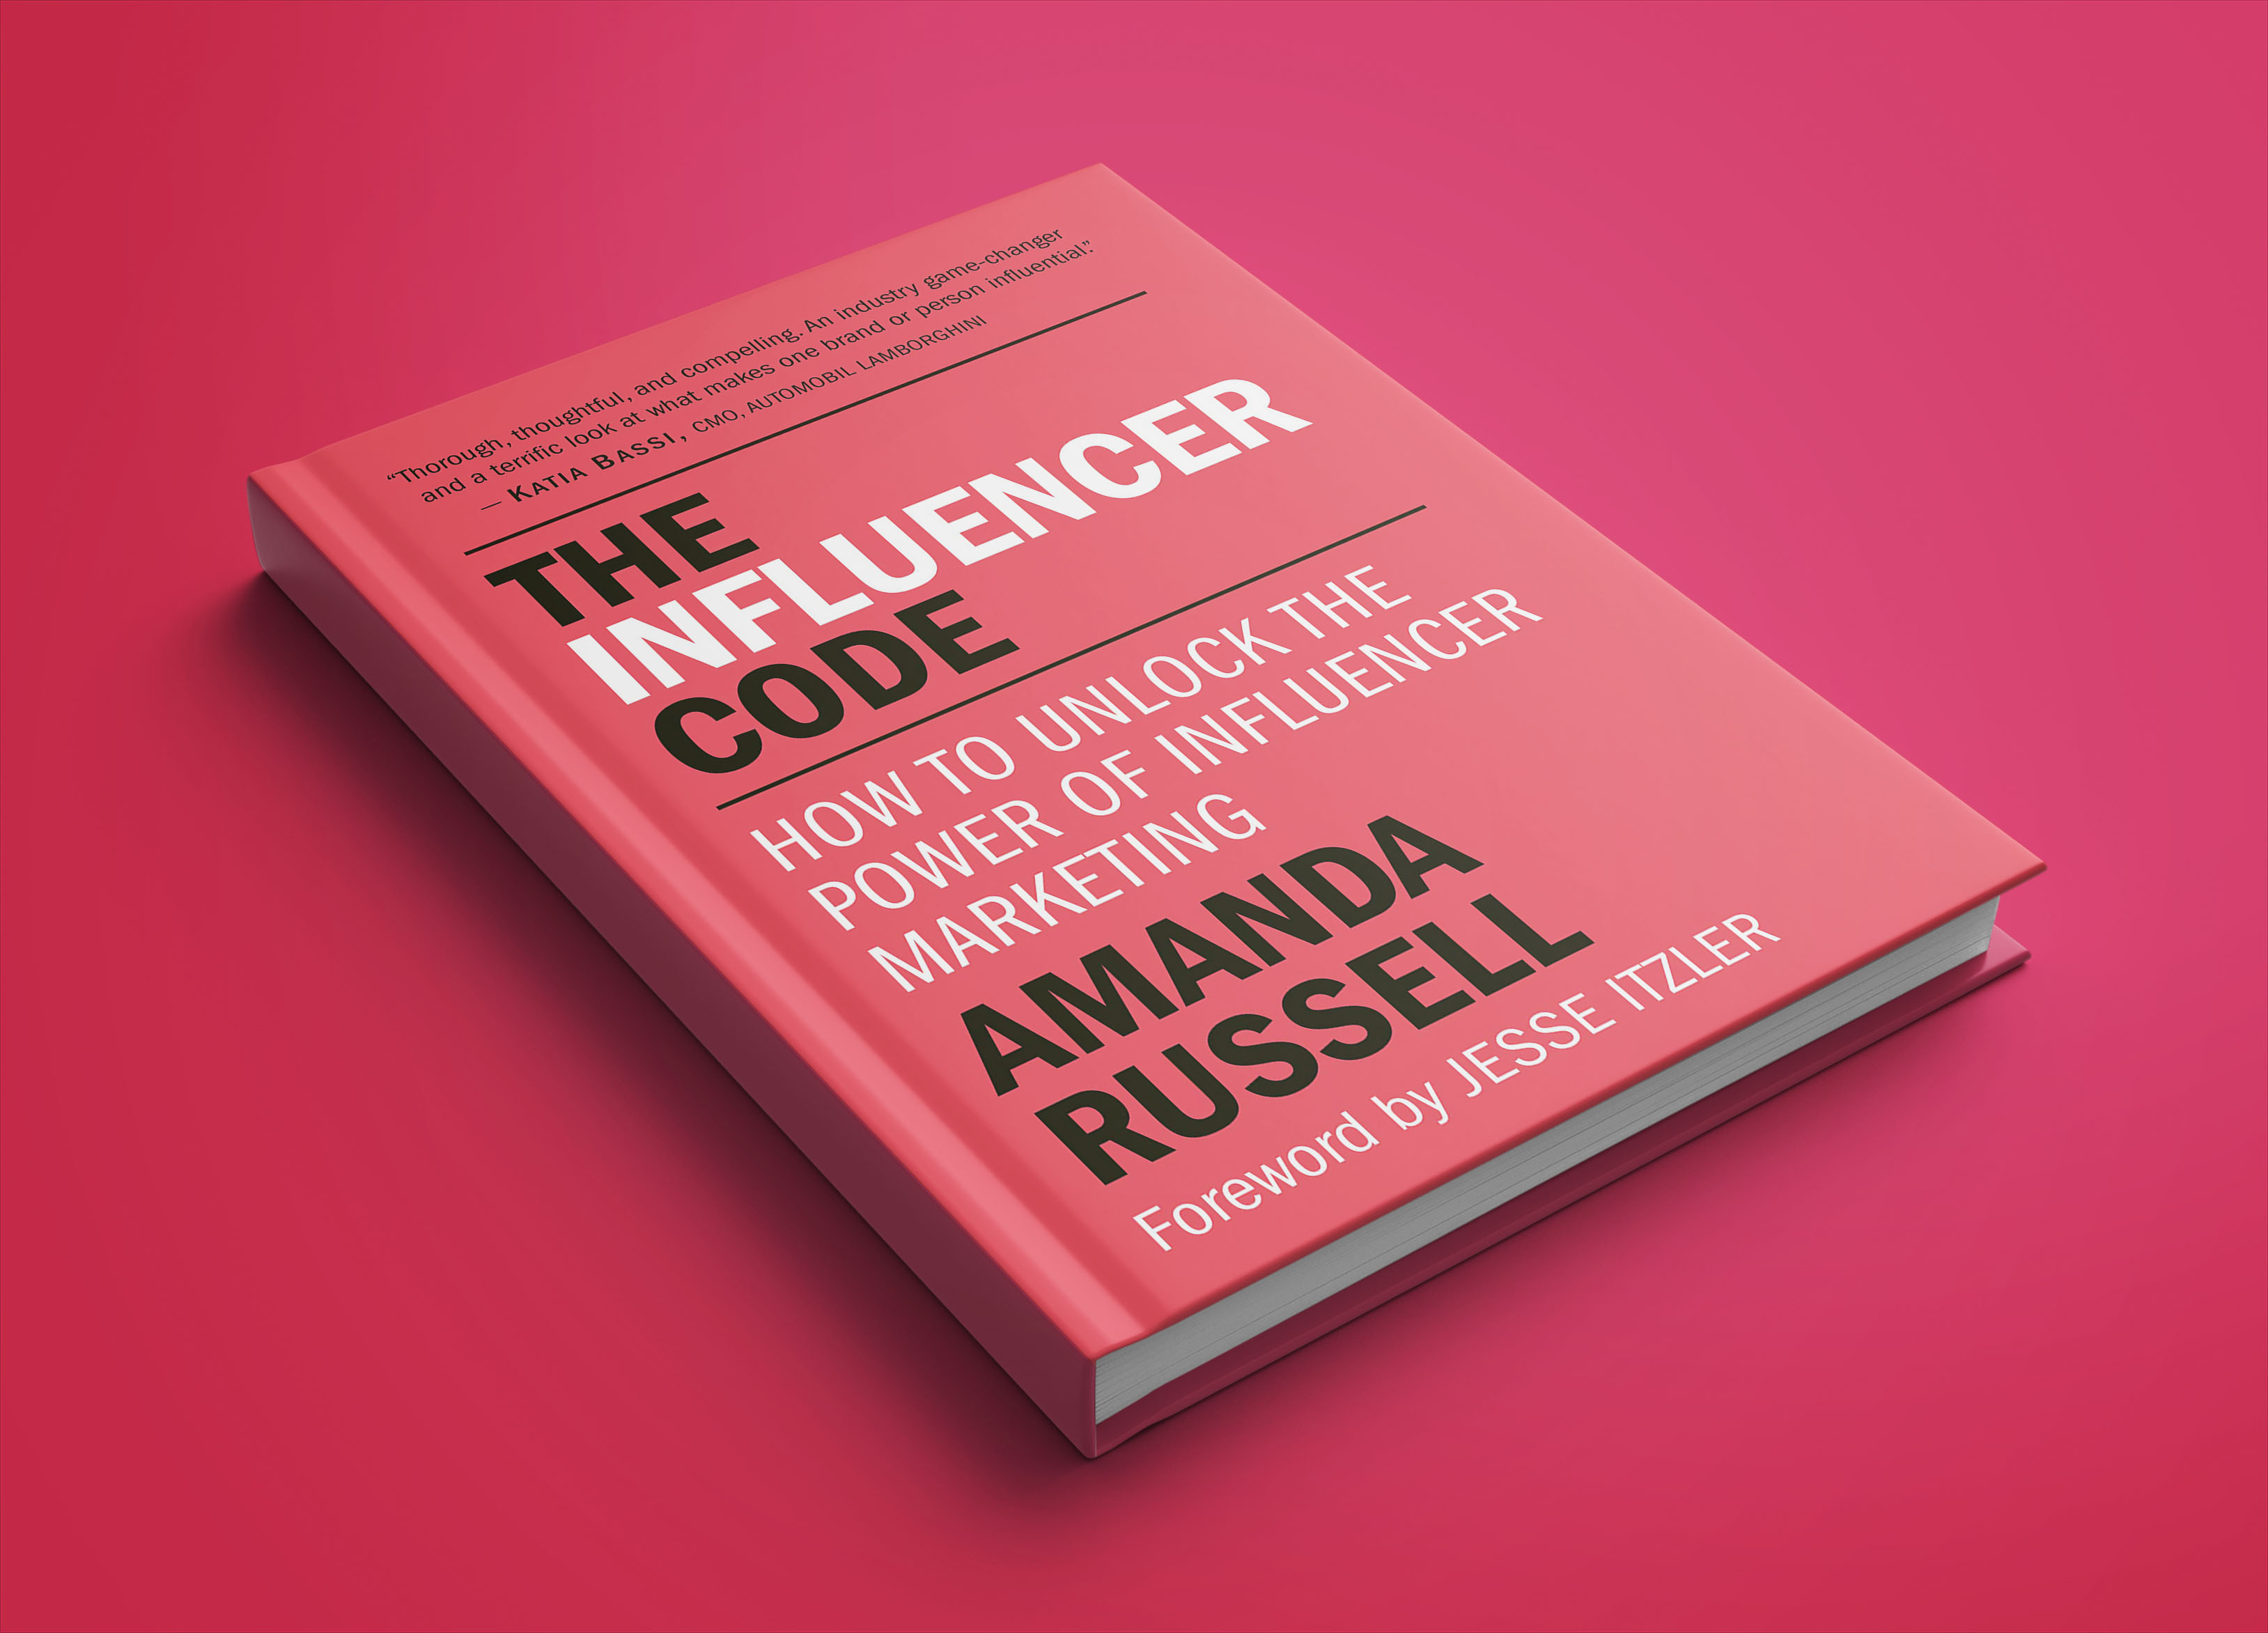 The Influencer Code by Amanda Russell—An essential book if you wan to become an influential digital marketer.